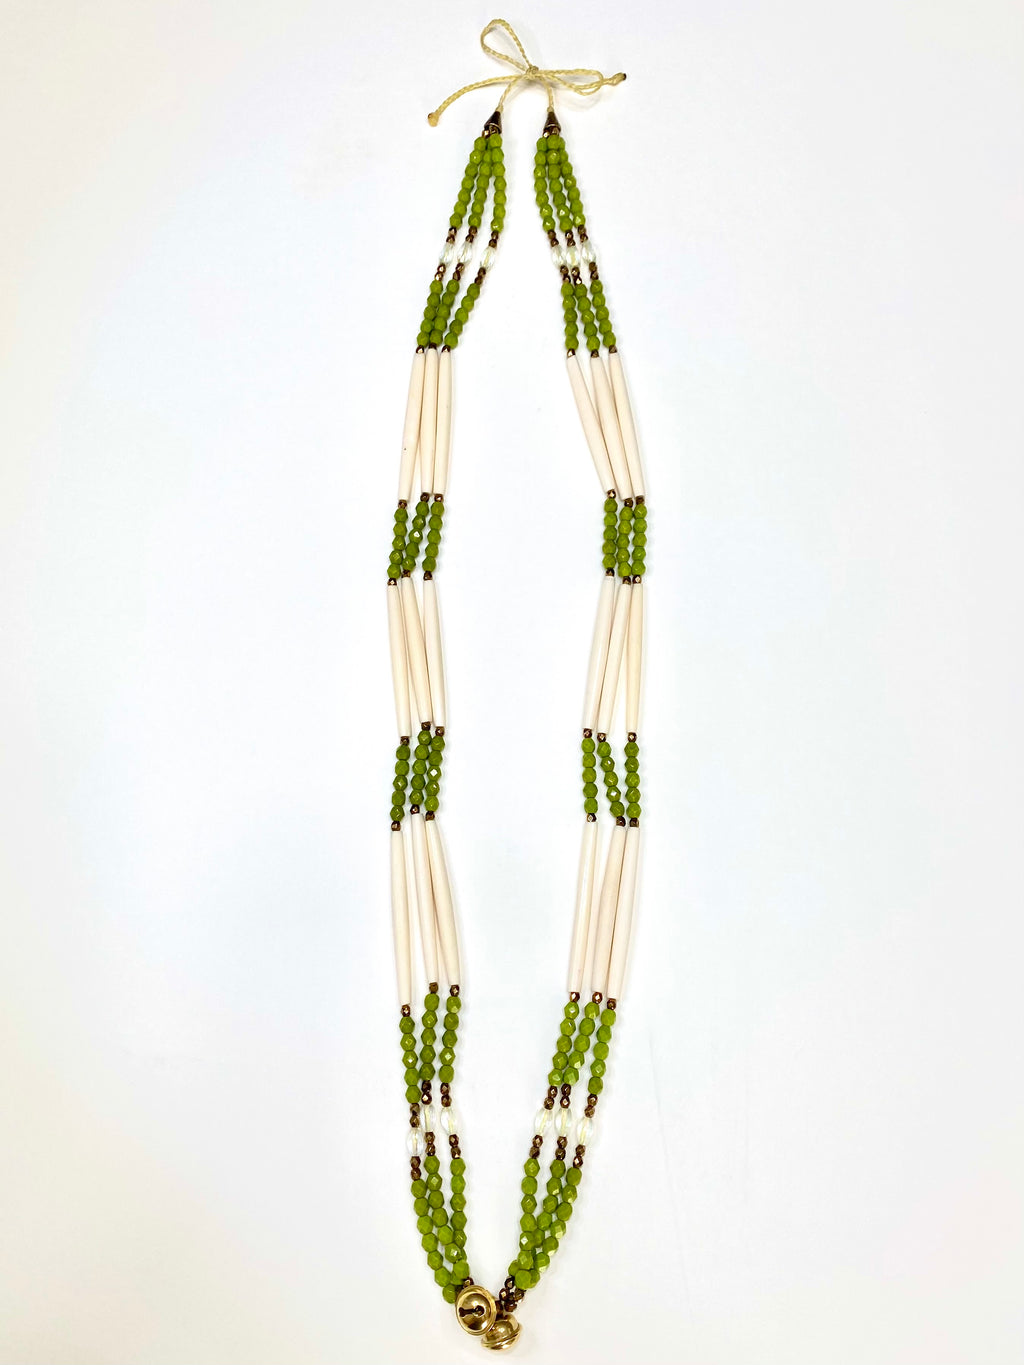 Bone & Beads Necklace - Olive